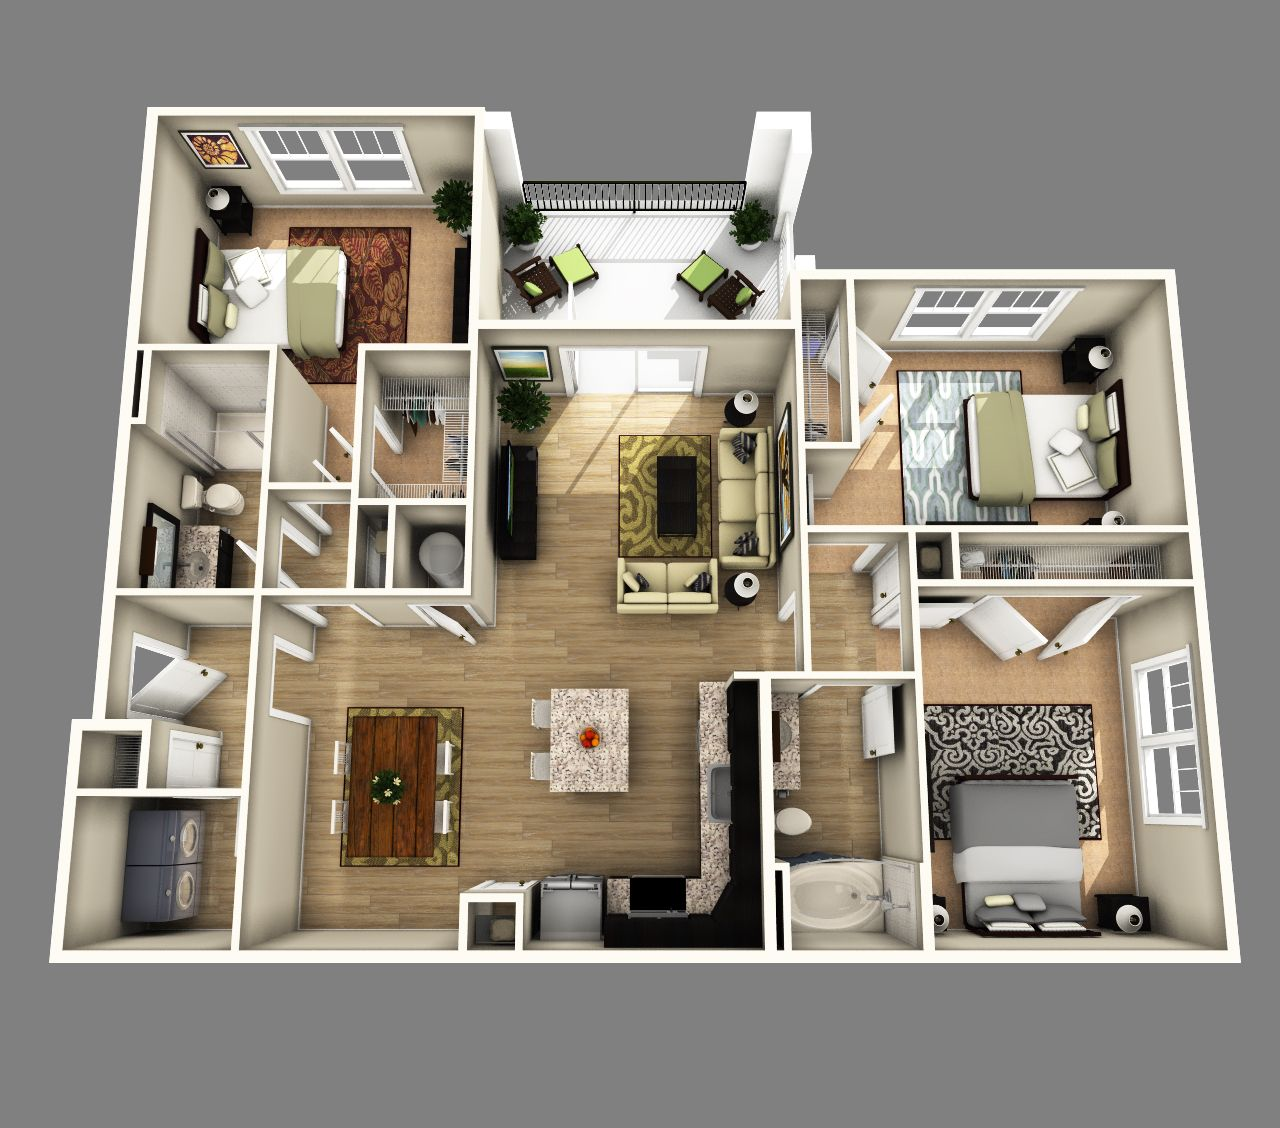 3d open floor plan 3 bedroom 2 bathroom google search for Design layout 2 bedroom flat